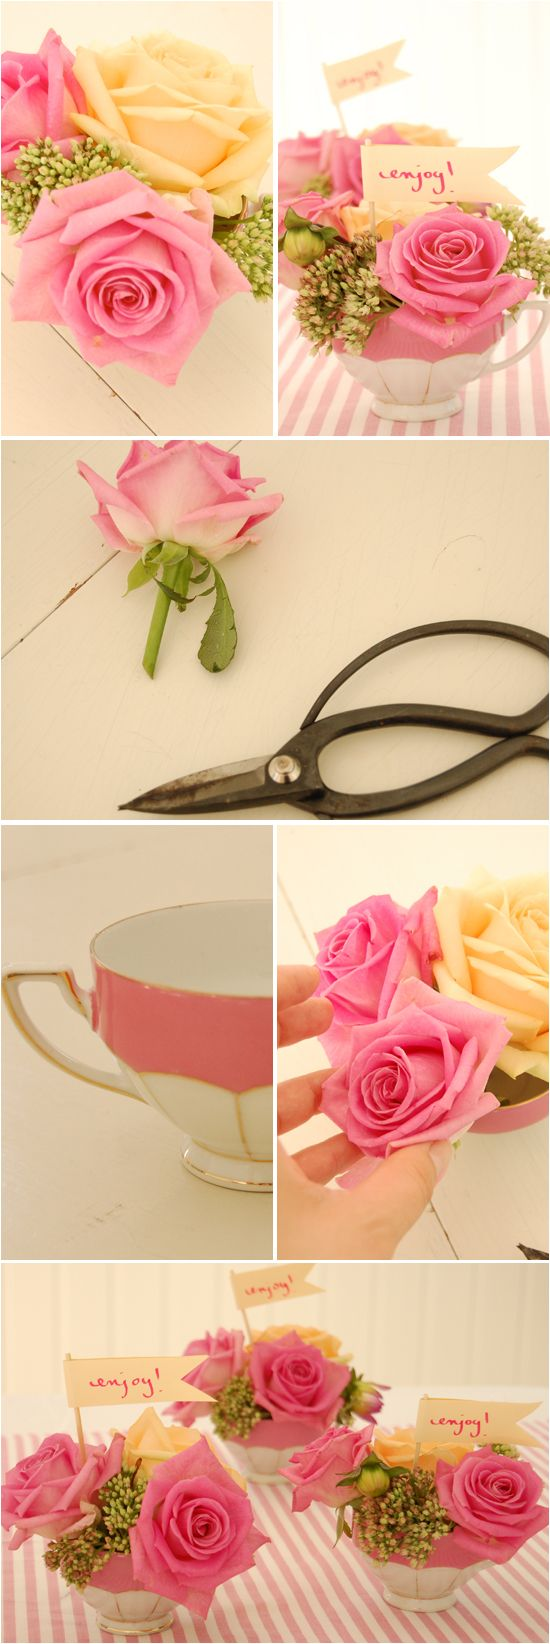 How to make teacup flower arrangements.